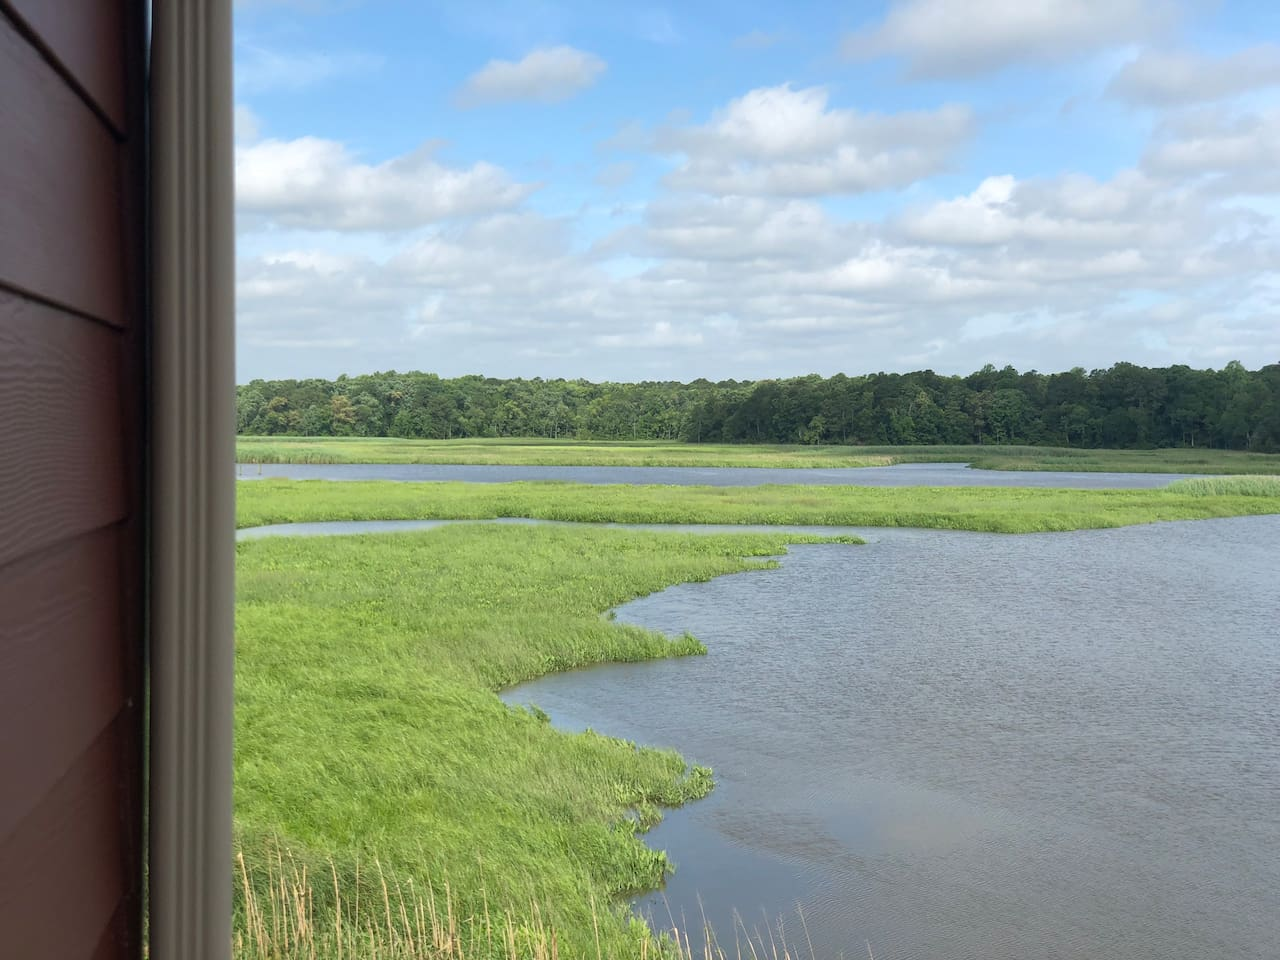 Great views of the marshes on Gray's Creek from the room!